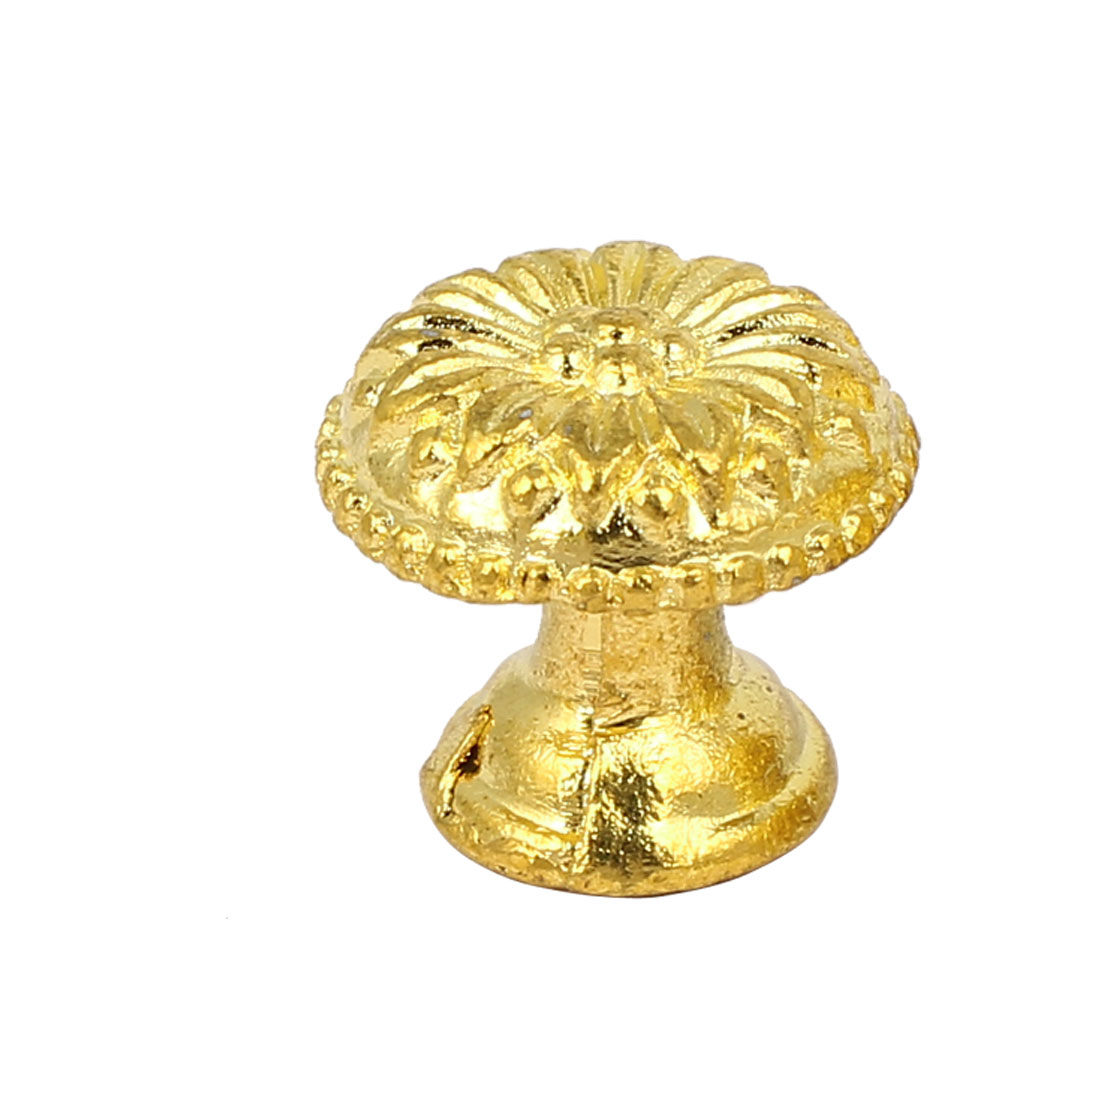 Cabinet Drawer Dresser Single Hole Metal Round Pull Knob Gold Tone